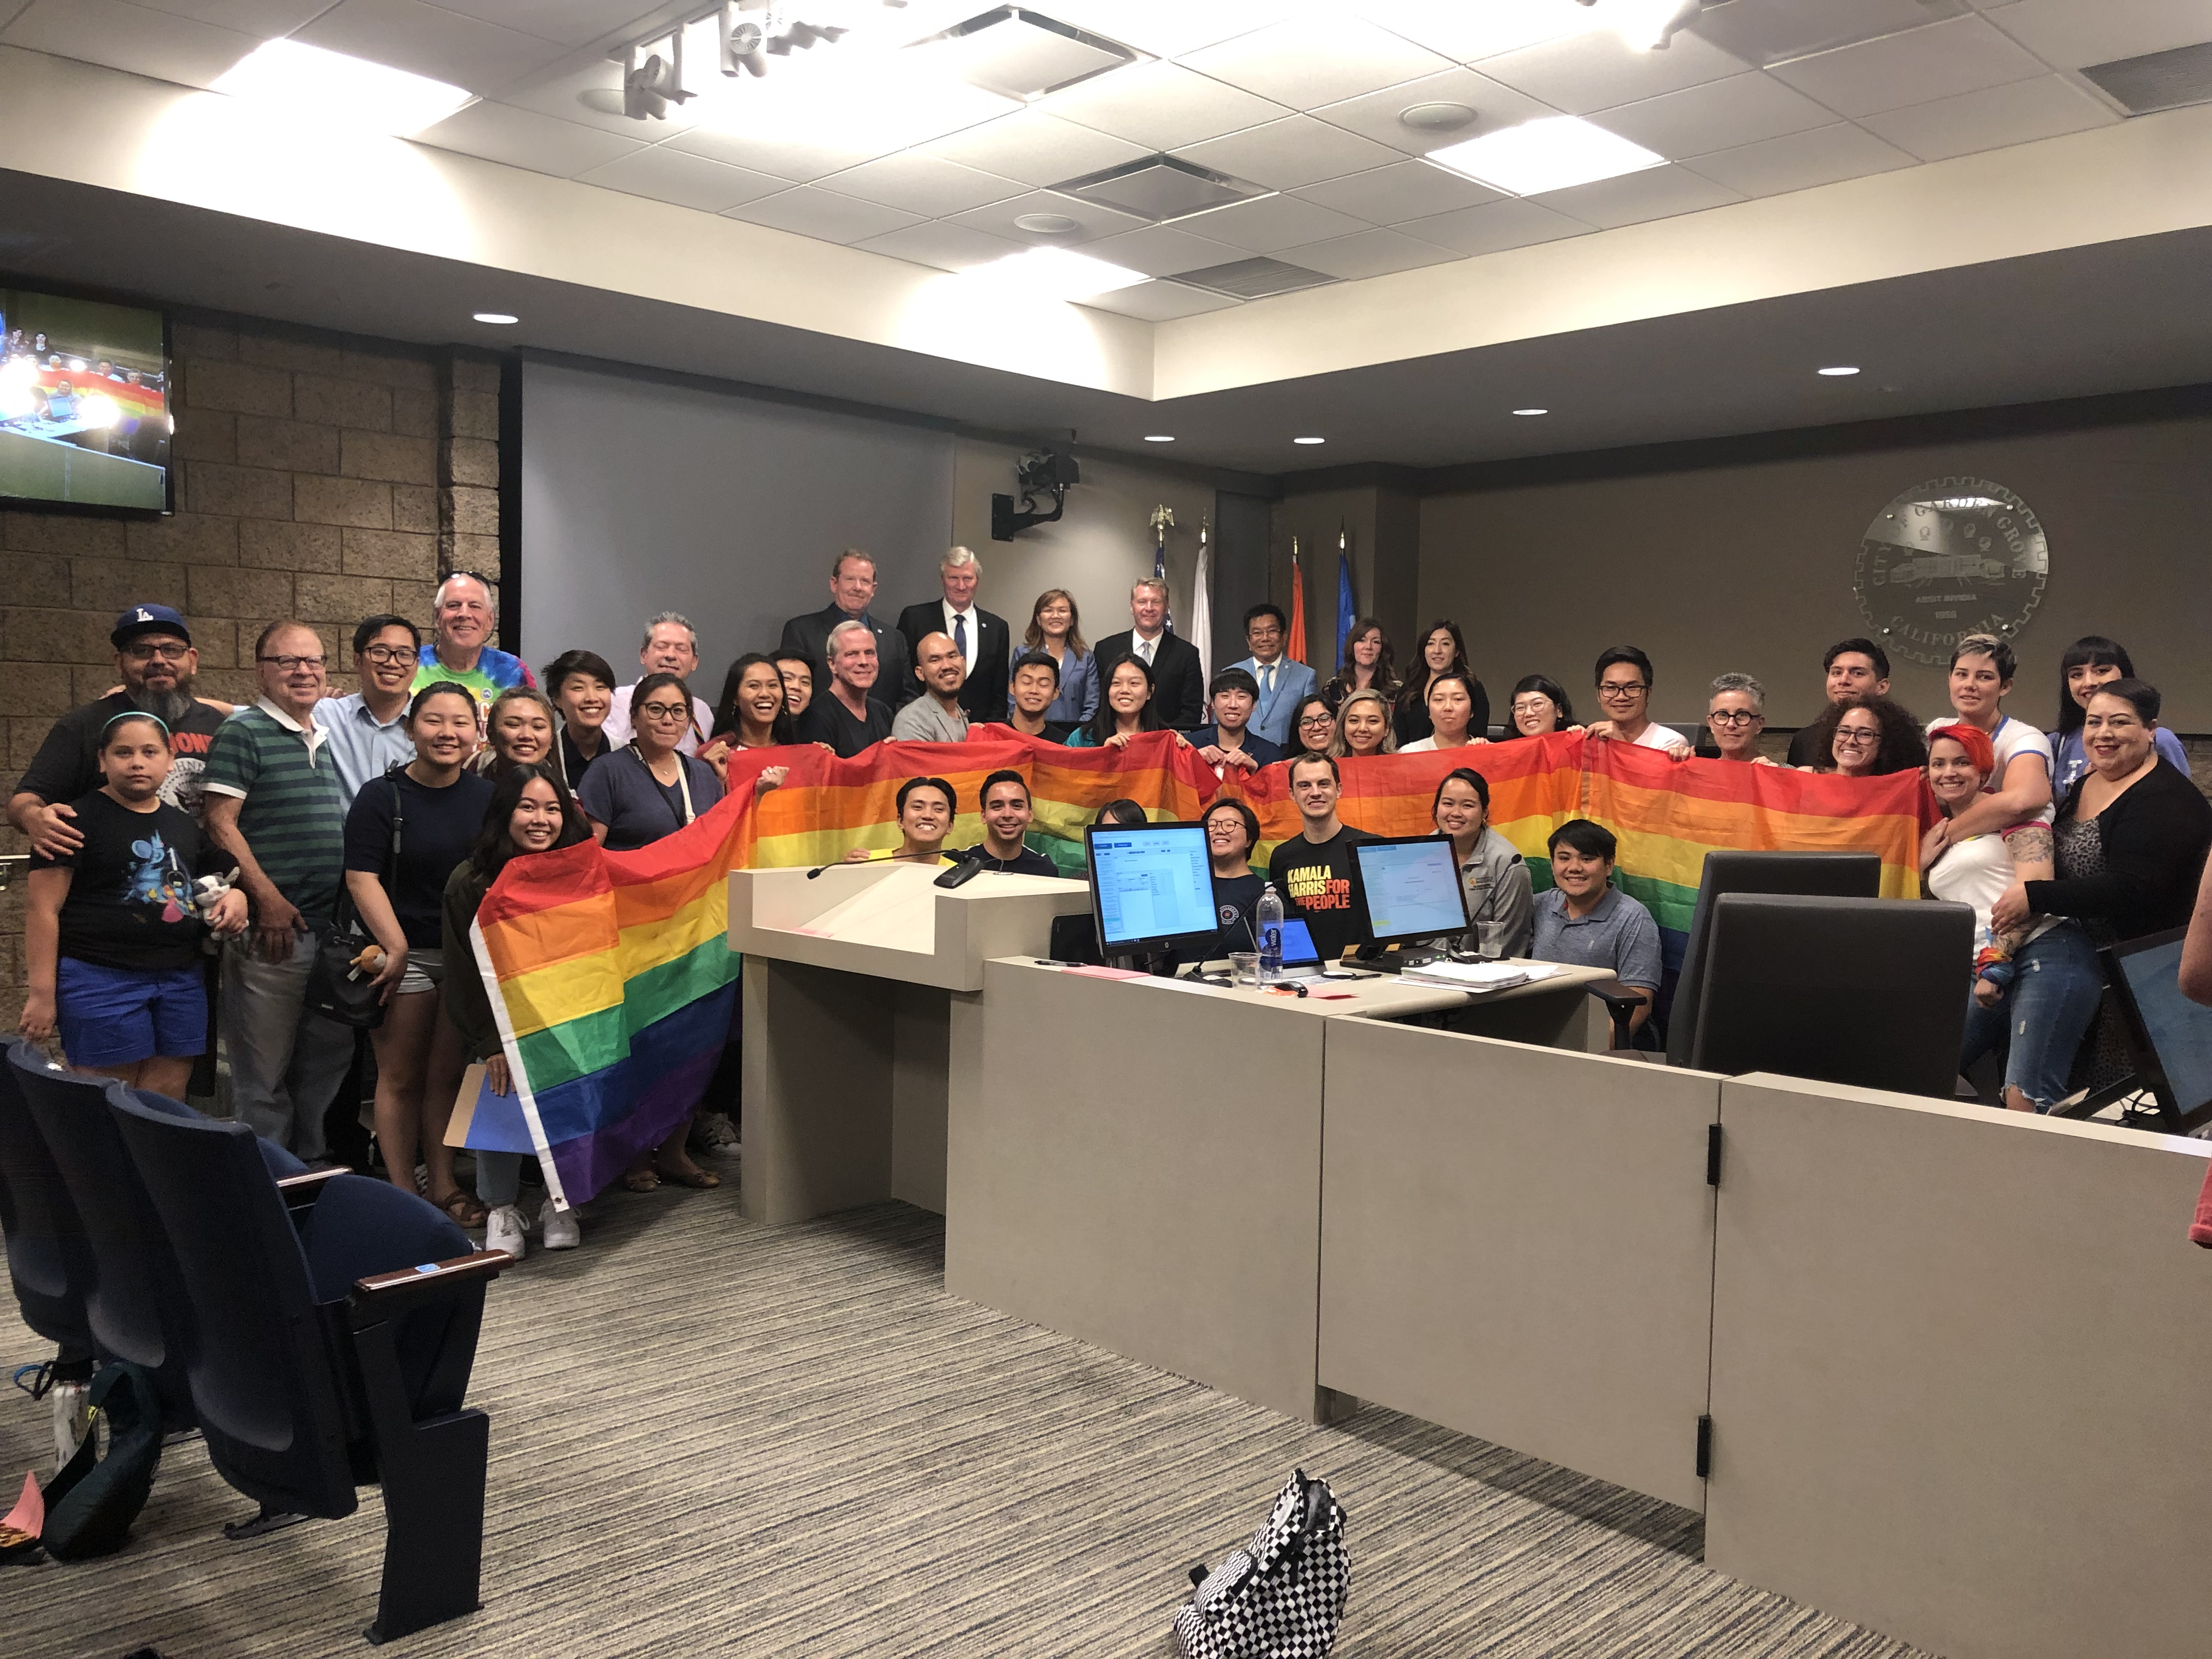 Garden Grove Community Scores Big Win by Securing the City to Light Up the Historic Clock Tower in Rainbow for LGBTQ+ Pride Month